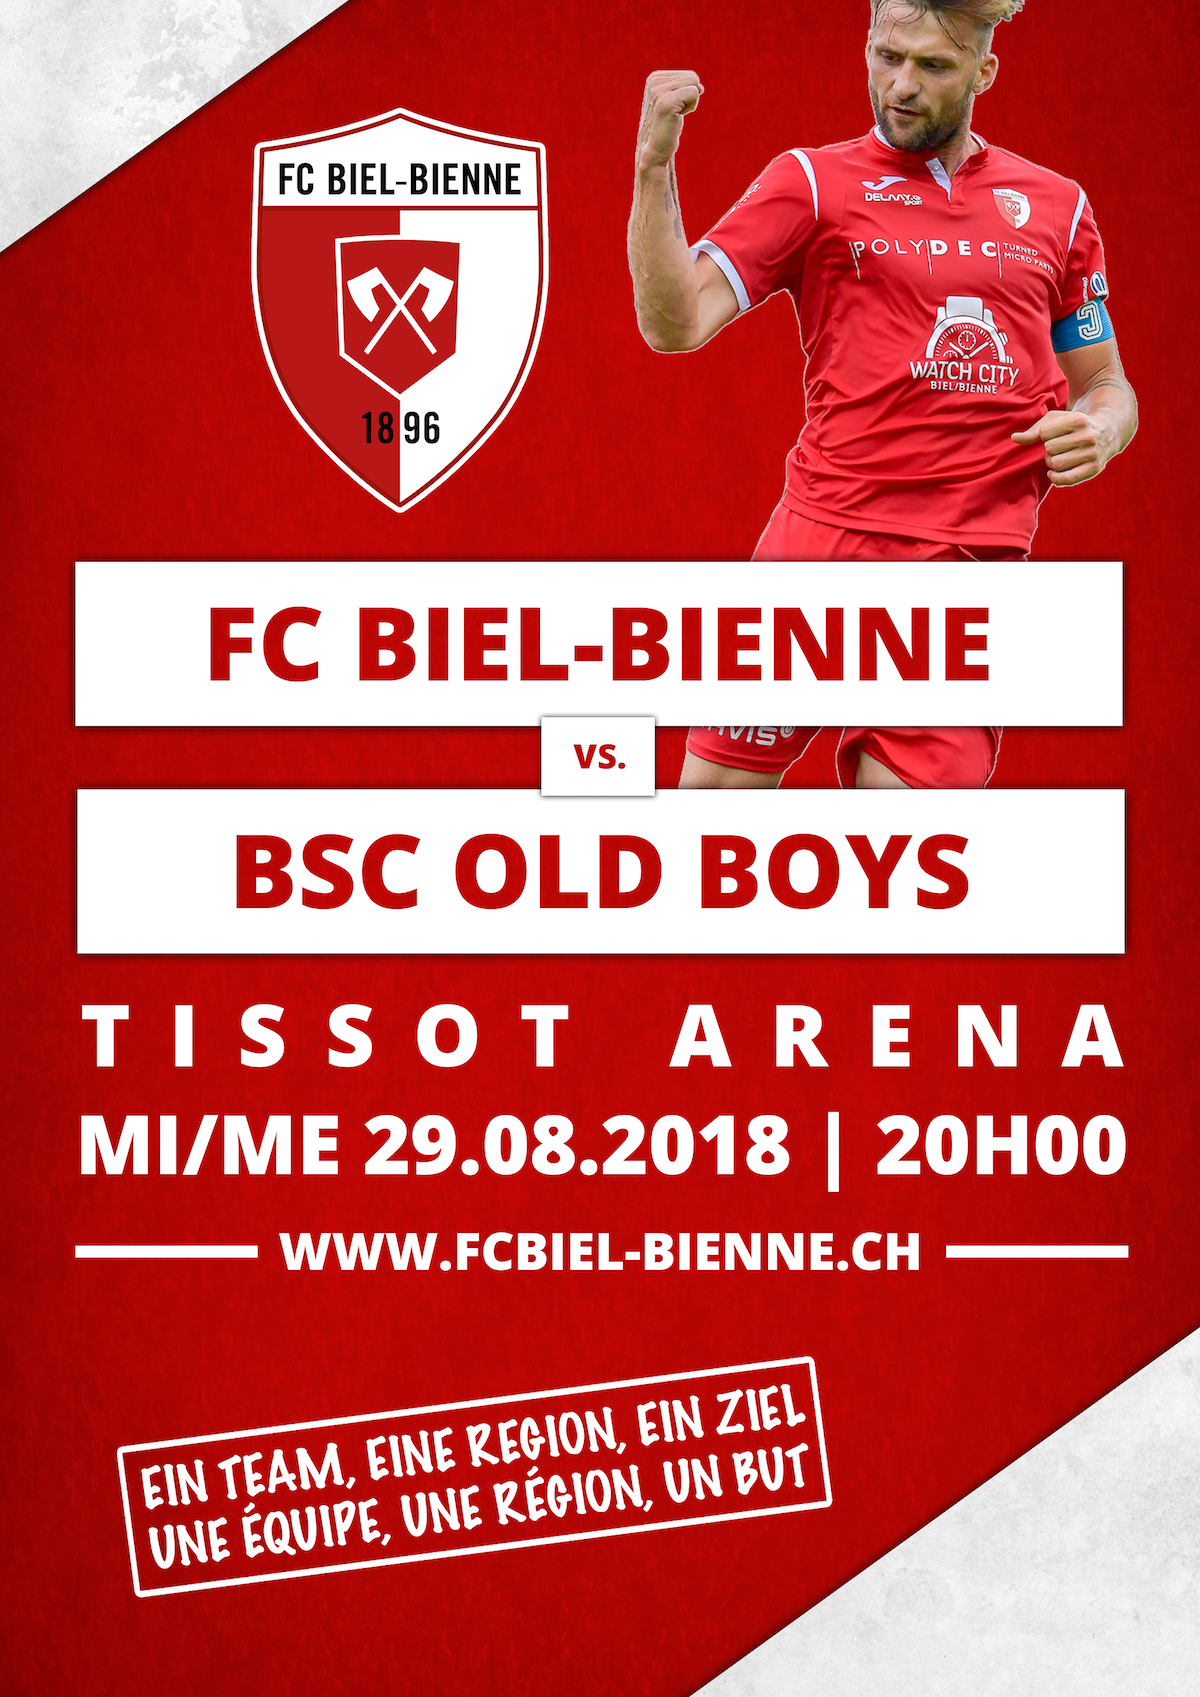 FC Biel-Bienne vs. BSC Old Boys